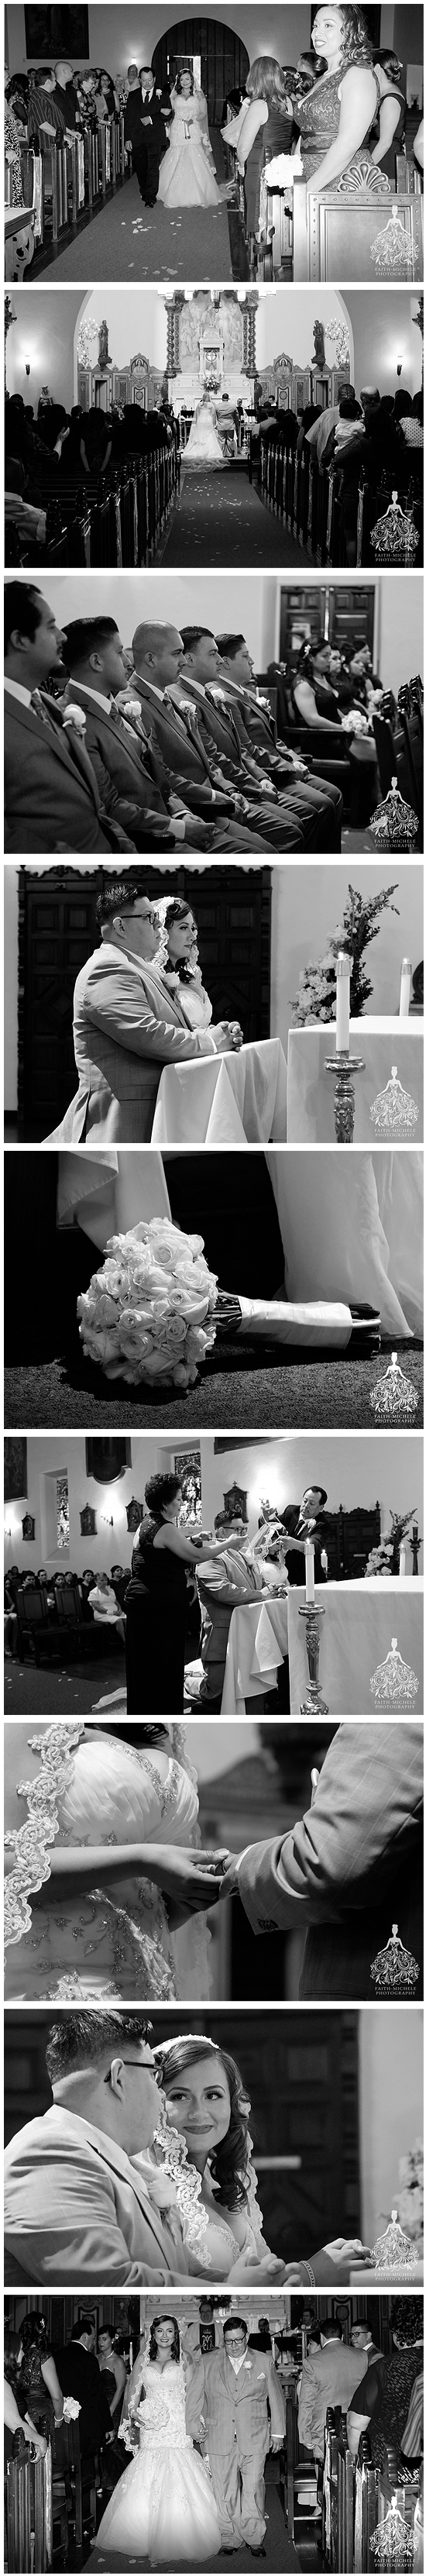 st. elizabeth's pasadena wedding photo 005 (Sheet 5)